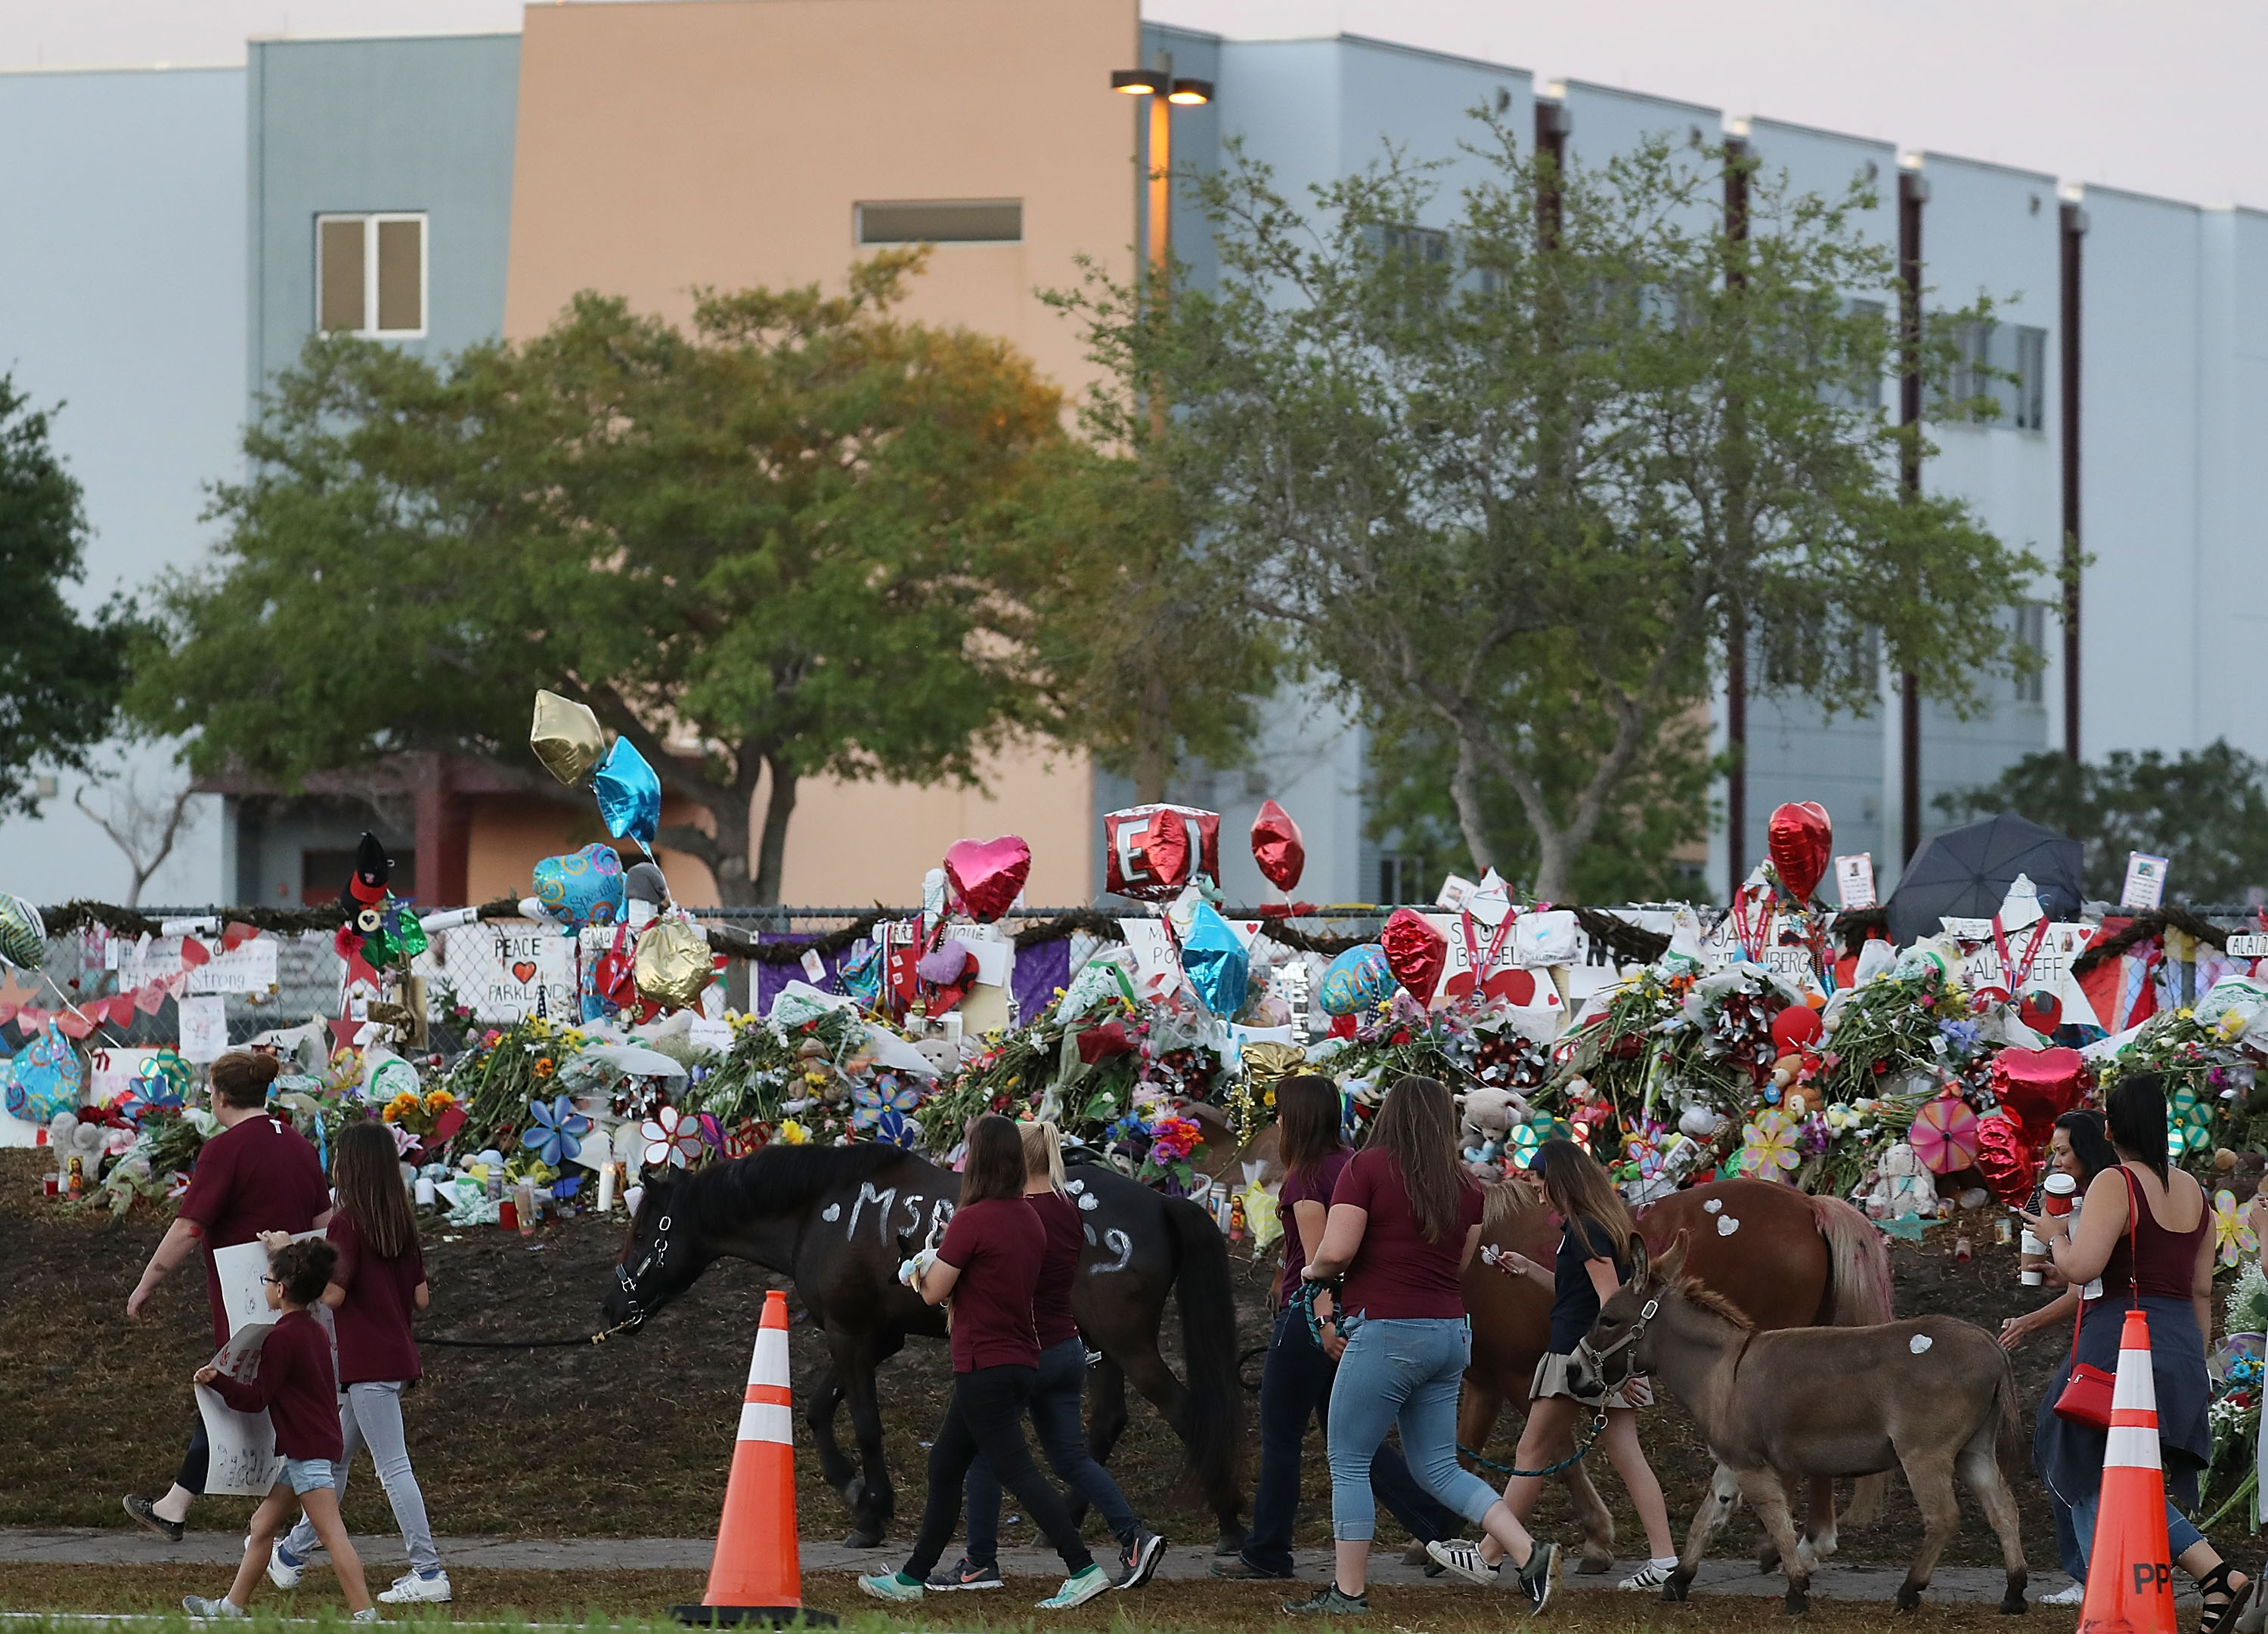 People arrive to offer support at Marjory Stoneman Douglas High School as student arrive to attend classes for the first time since the shooting that killed 17 people on February 14  at the school on February 28, 2018 in Parkland, Florida.